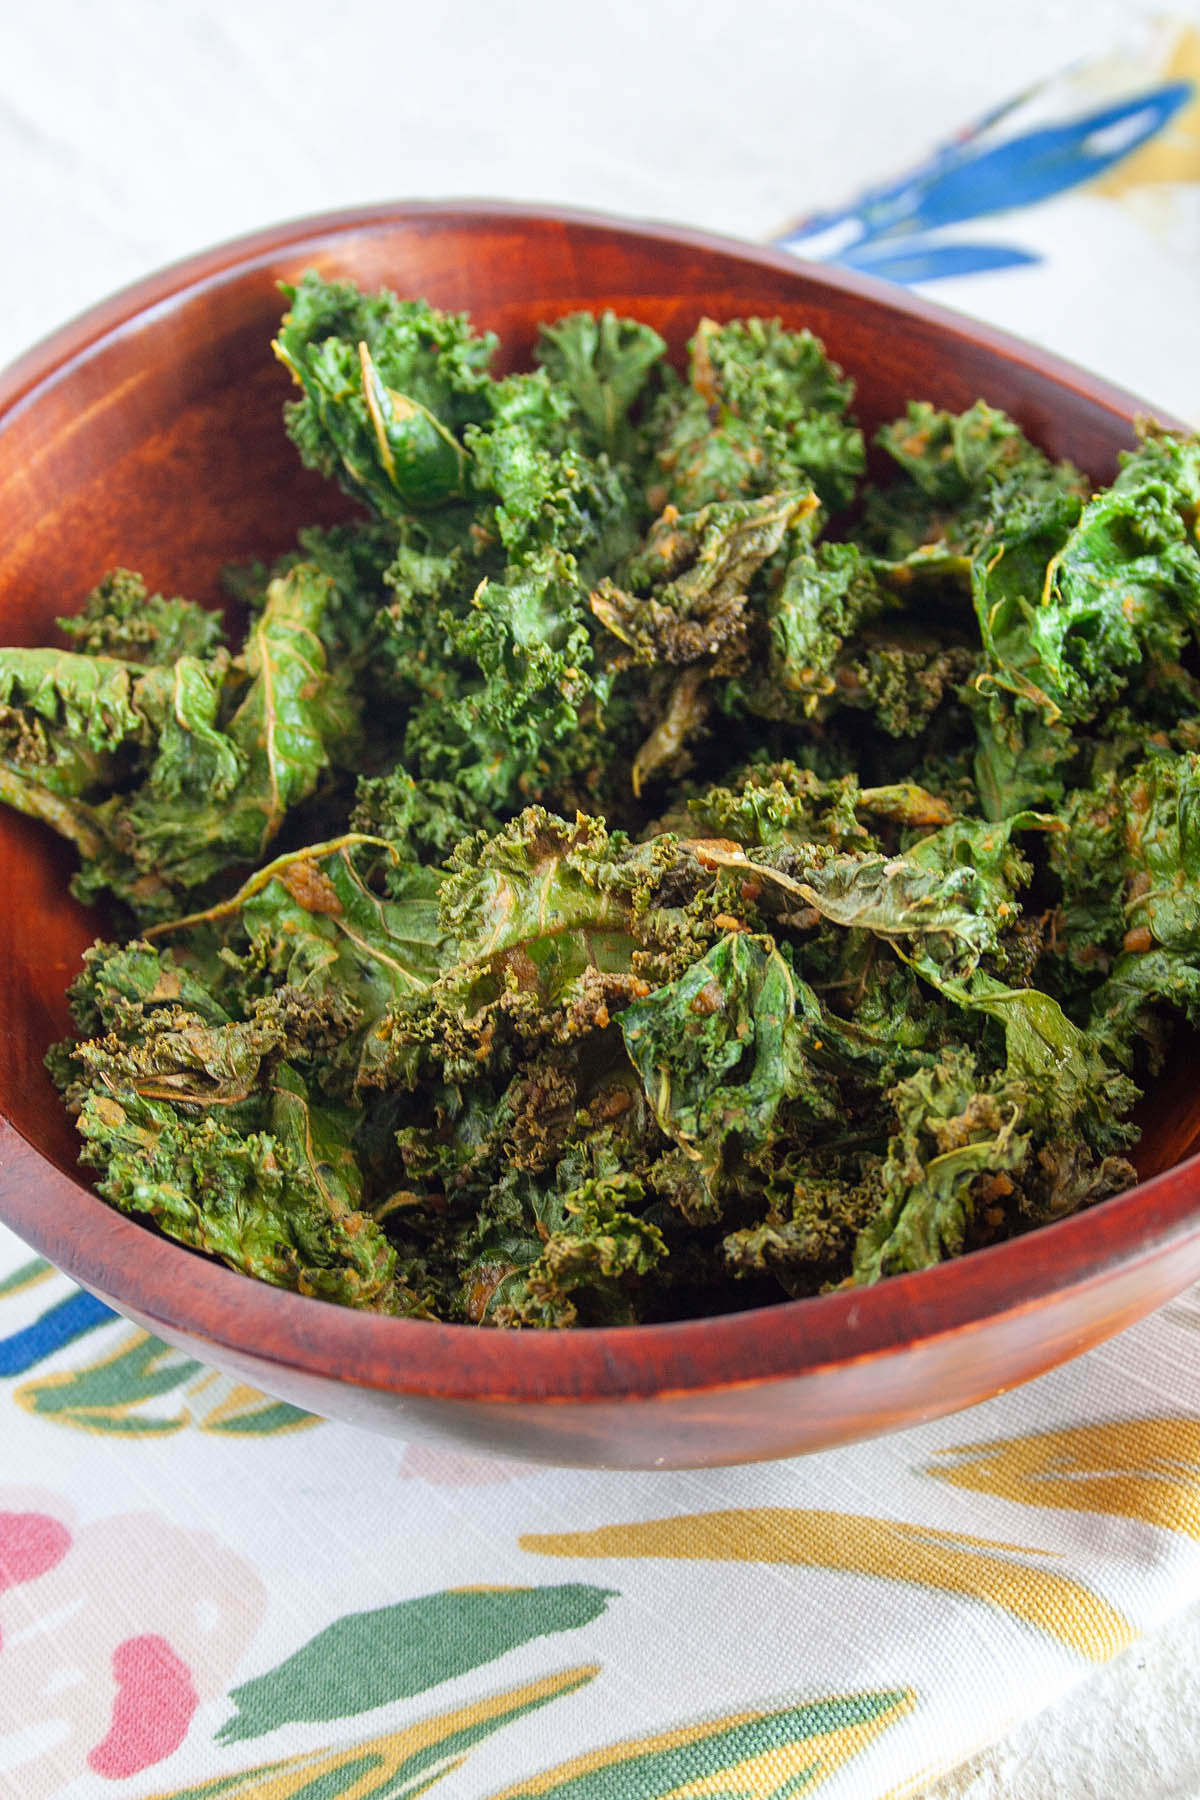 Kale Chips with Nutritional Yeast in wooden bowl.